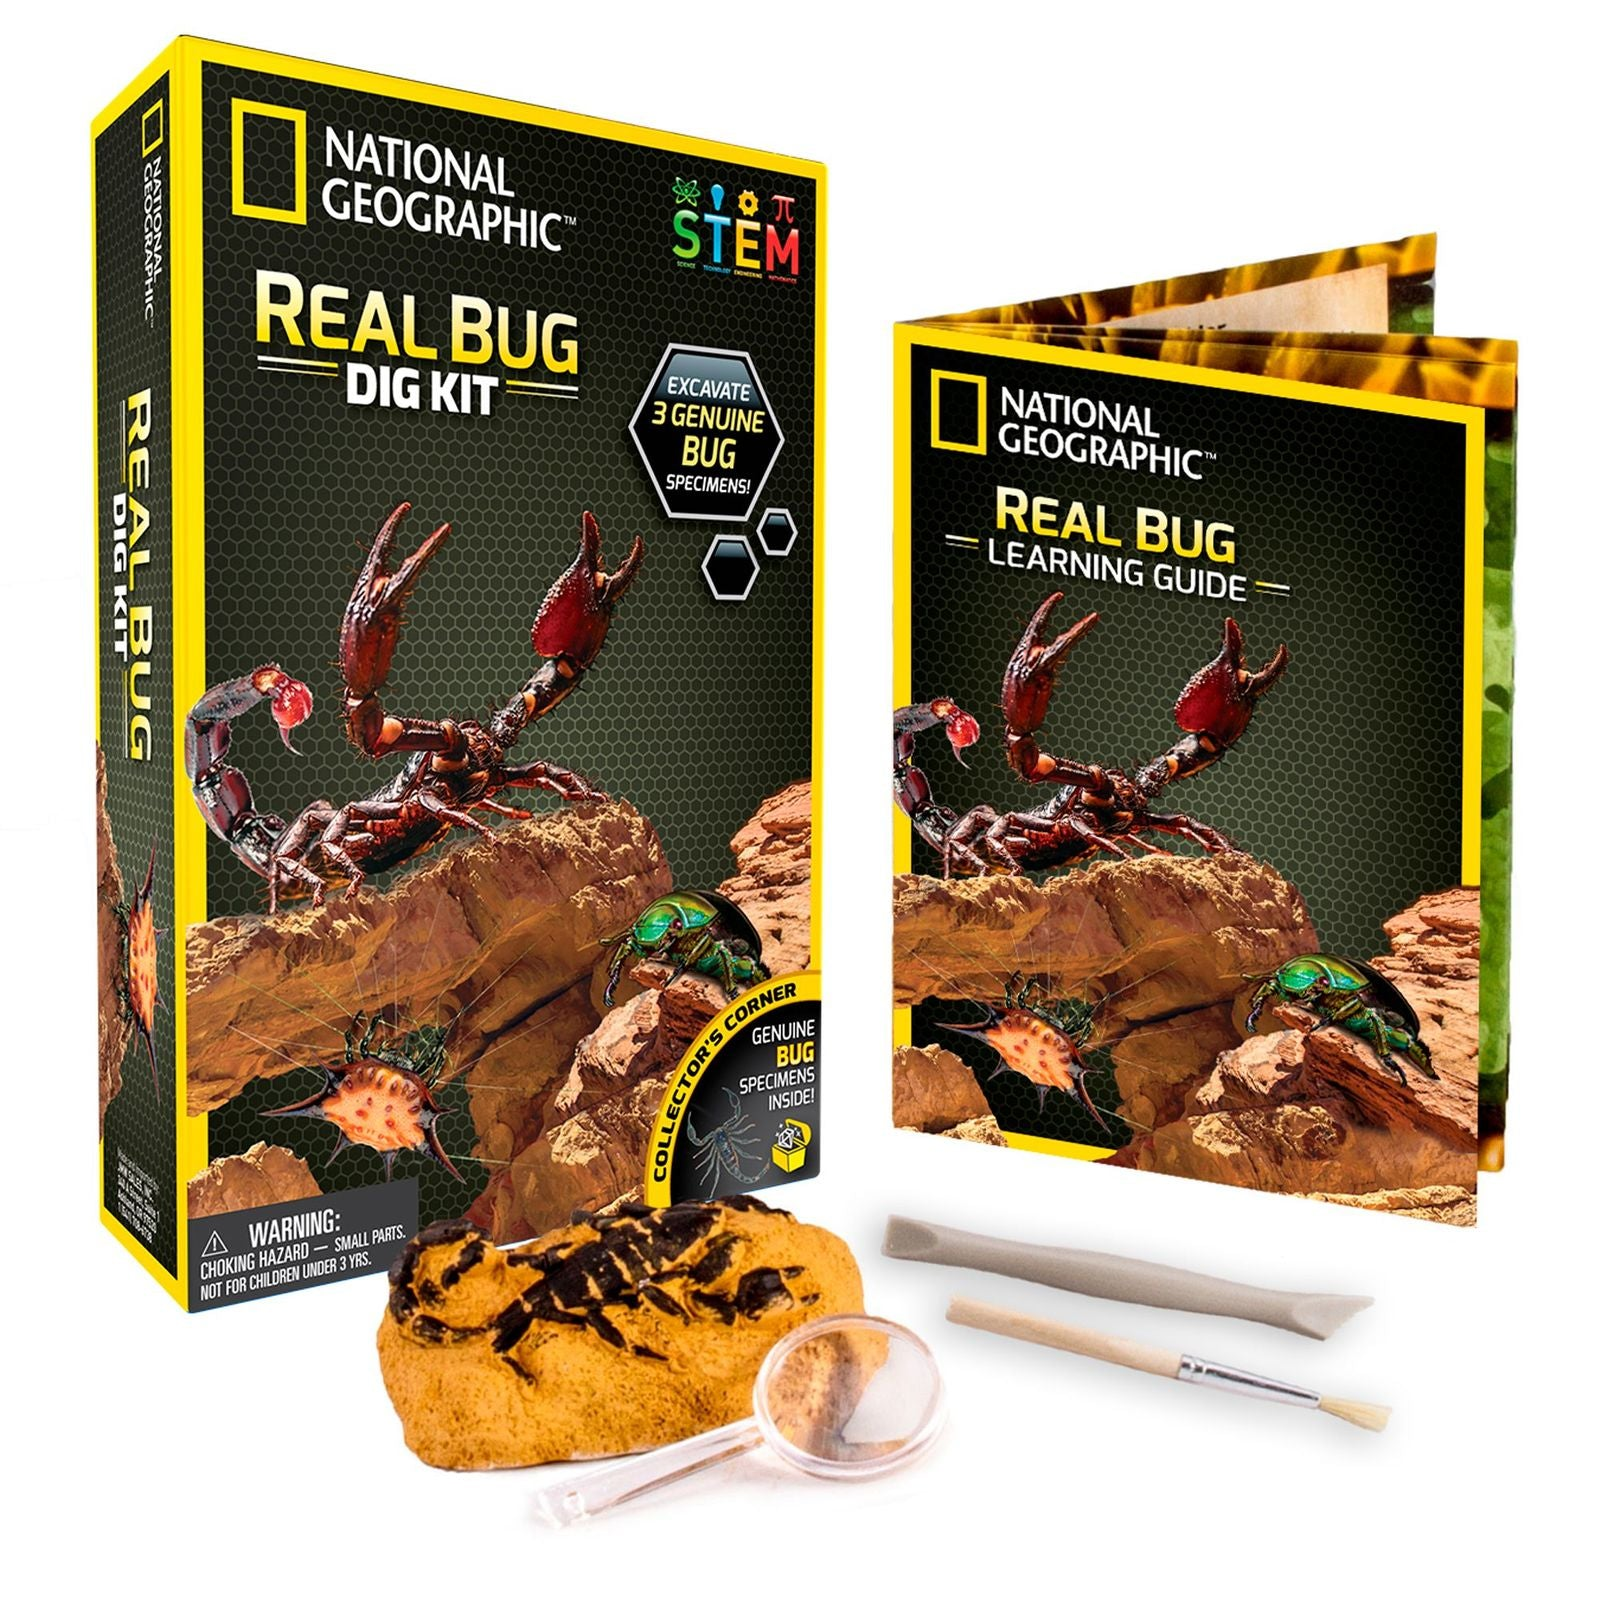 National Geographic: Real Bug Dig Kit